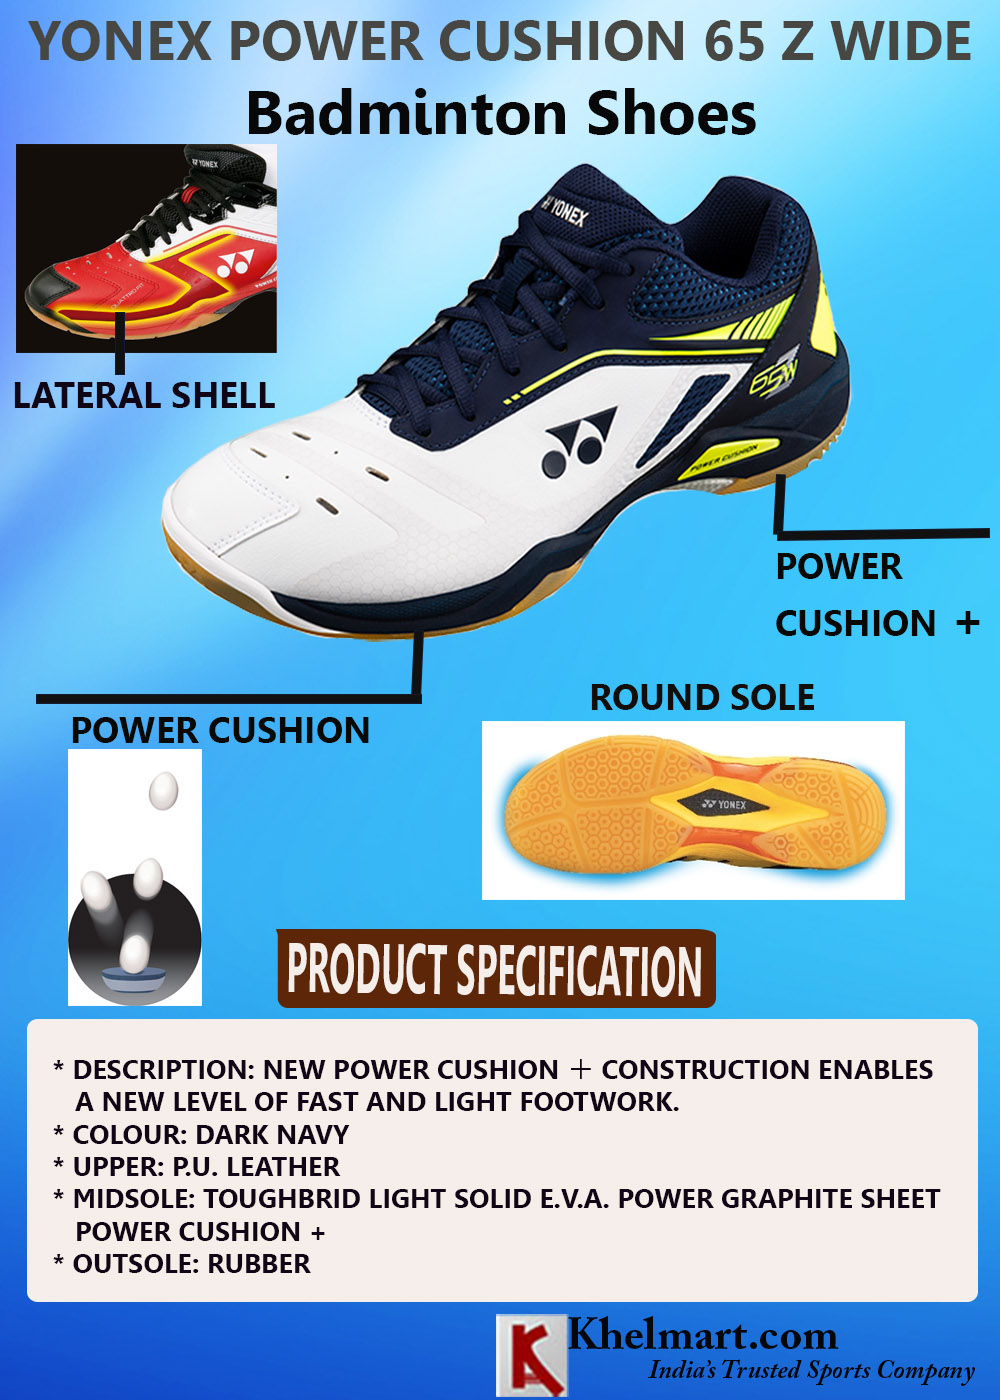 YONEX POWER CUSHION 65 Z WIDE_2